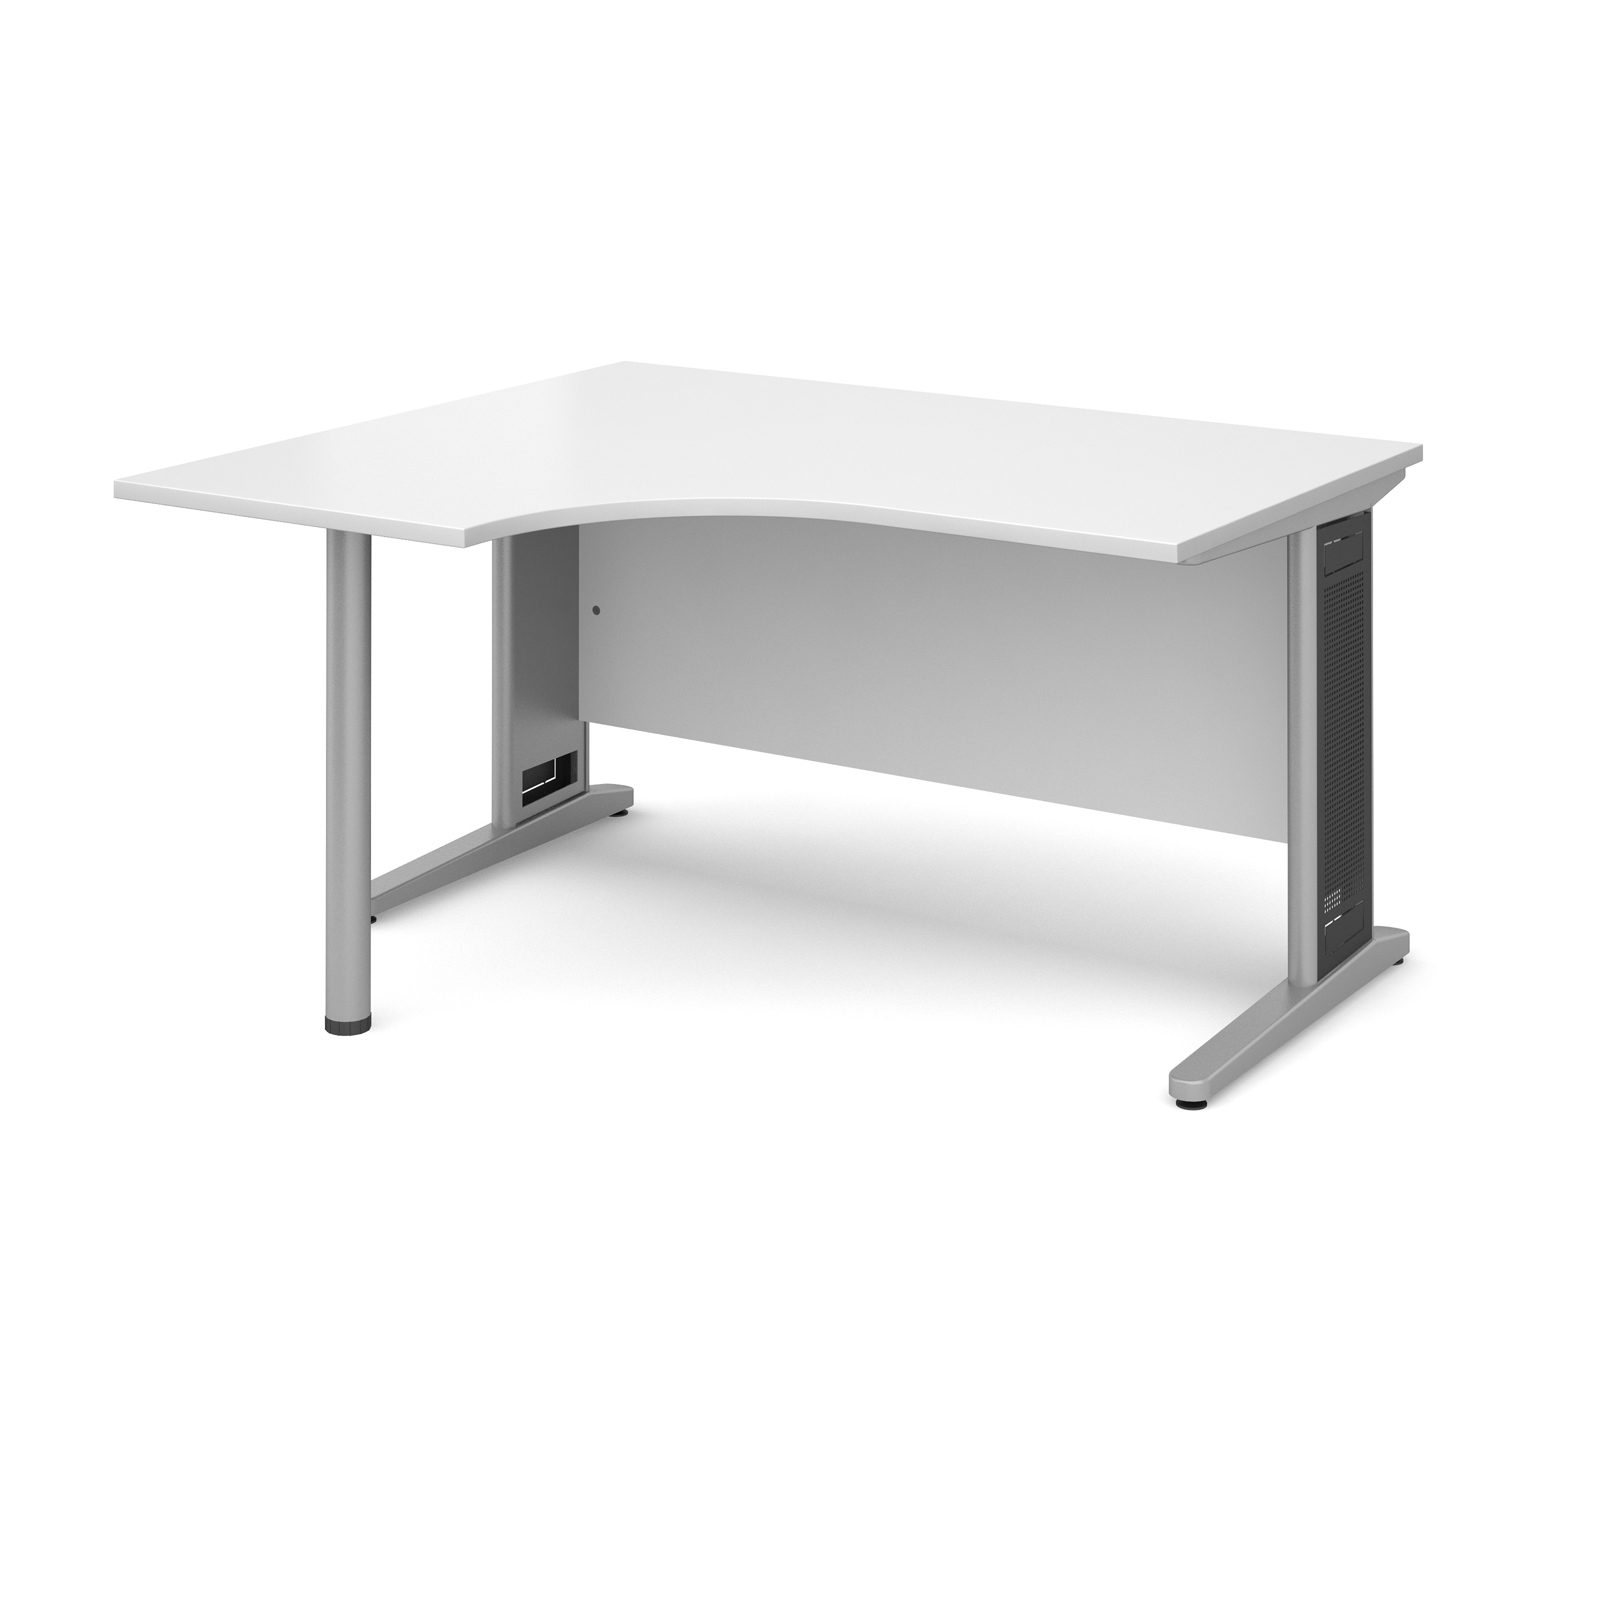 Largo left hand ergonomic desk 1400mm - silver cantilever frame with removable grill, white top